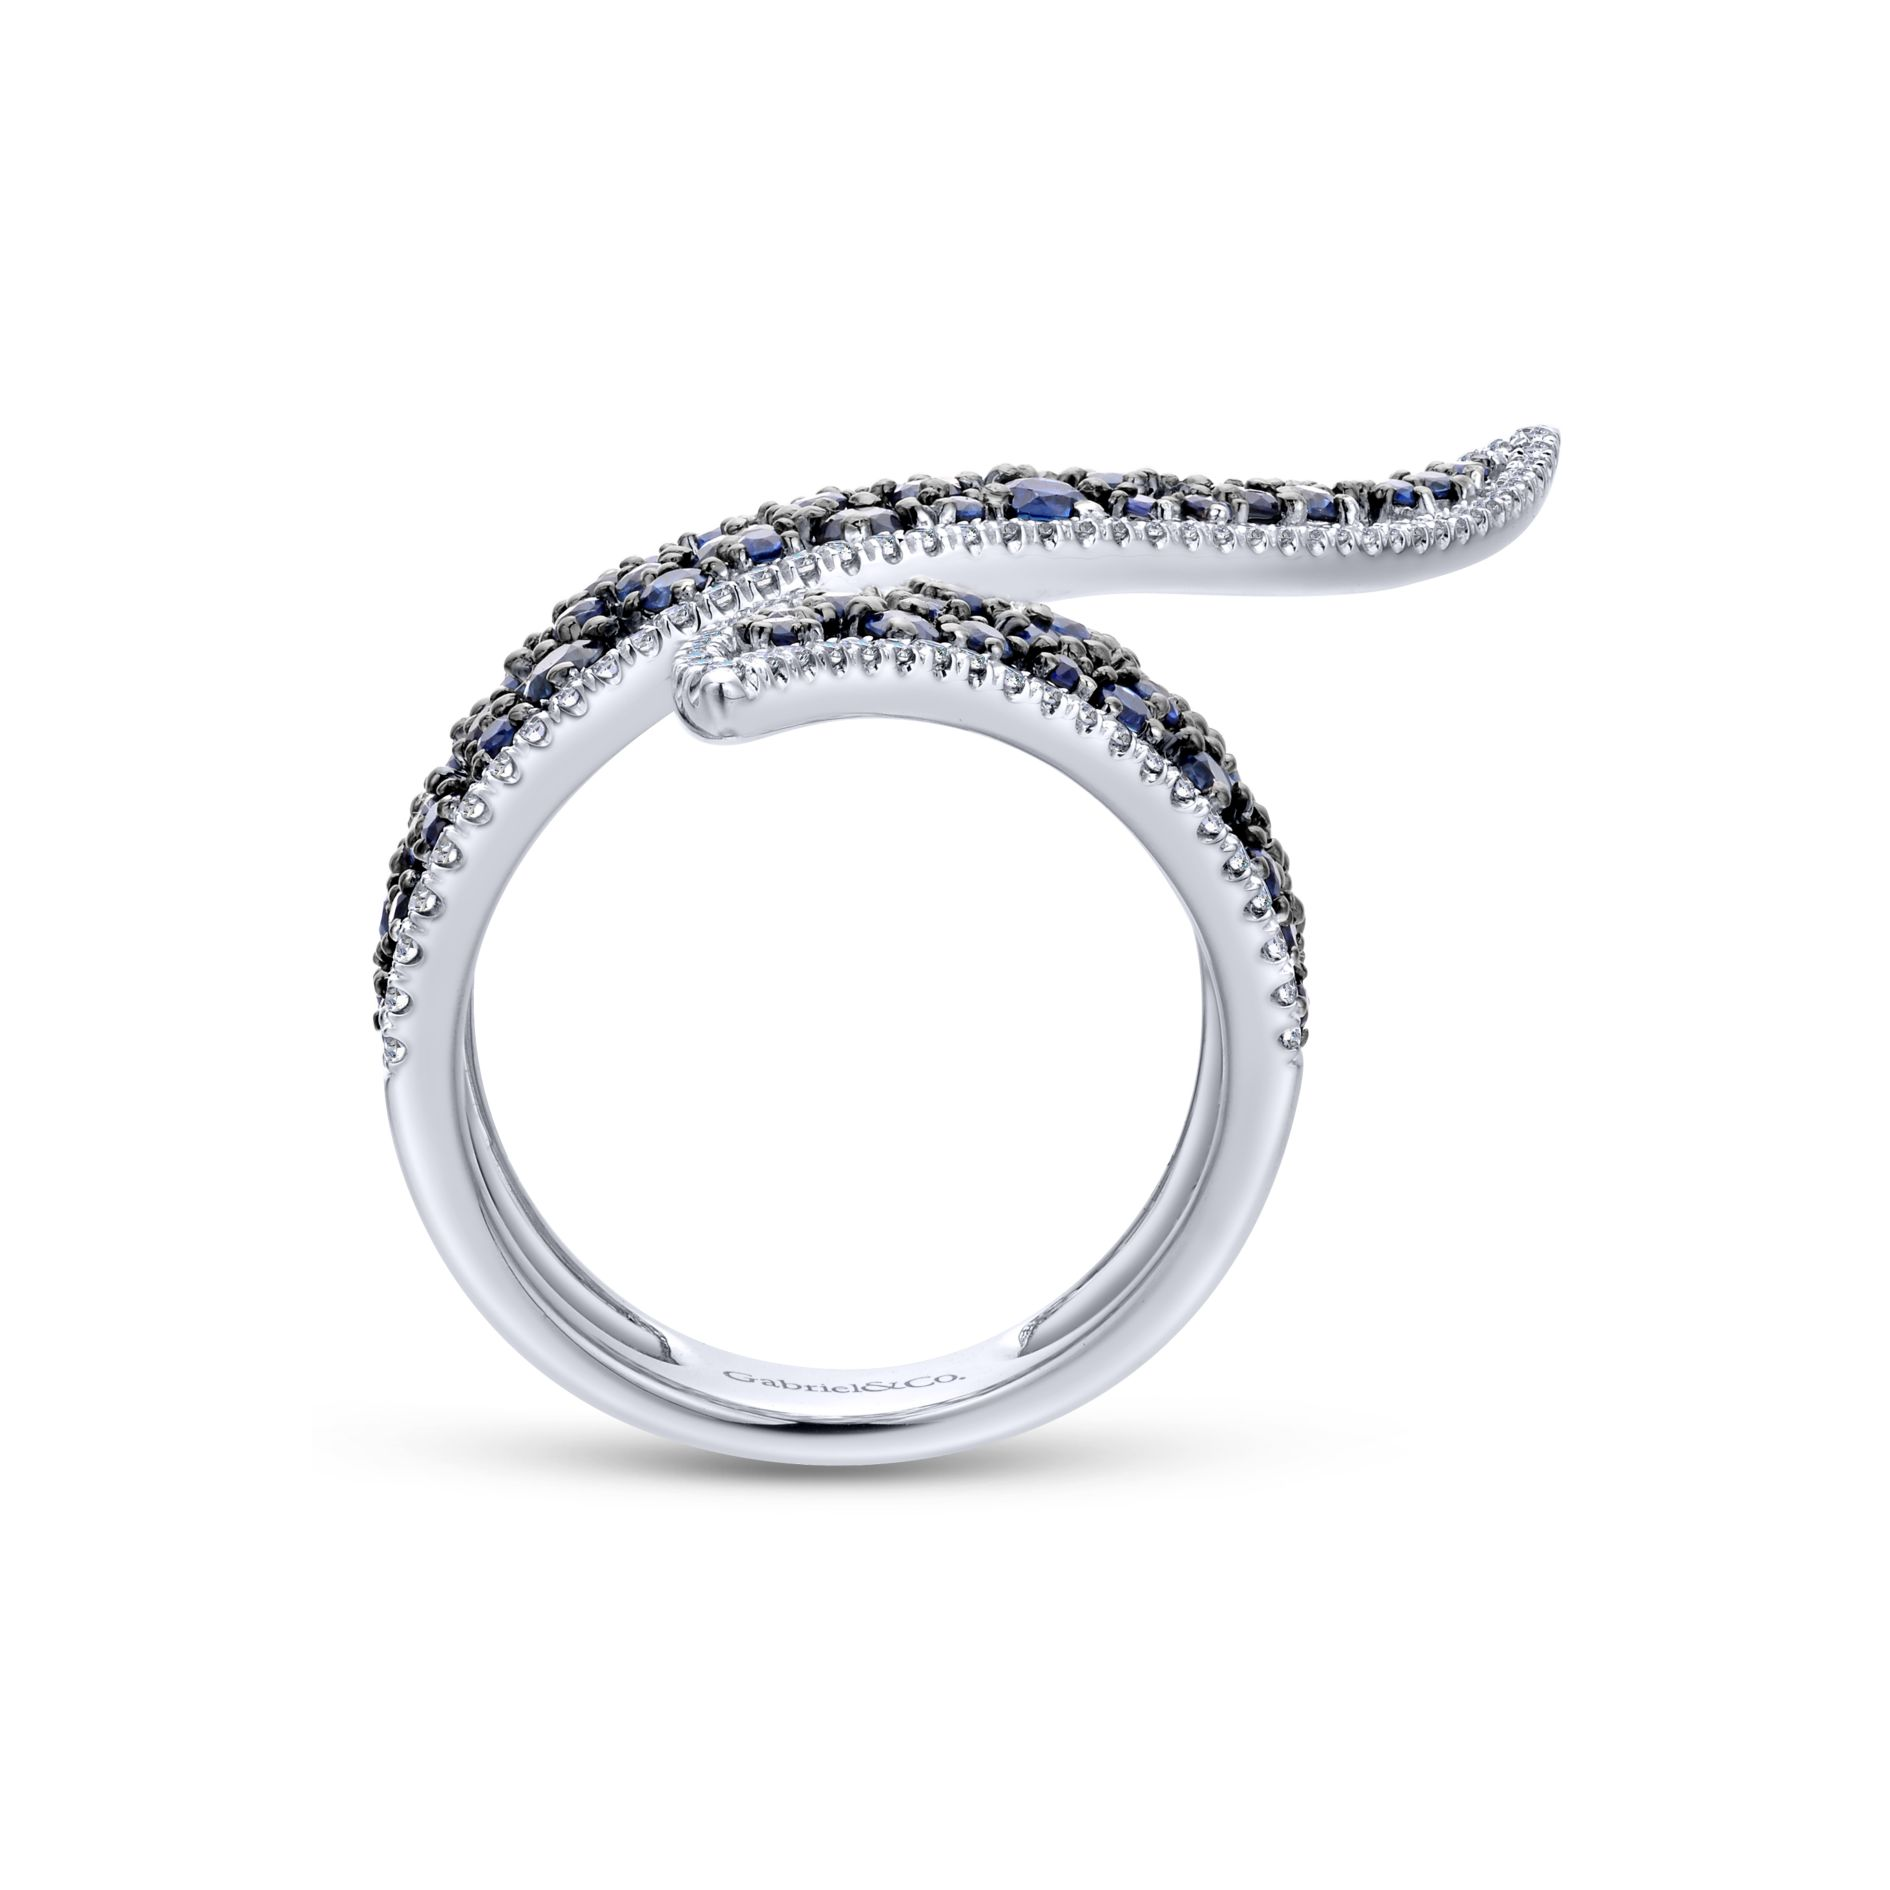 Rings - DIAMOND AND SAPPHIRE LADIES RING - image #2